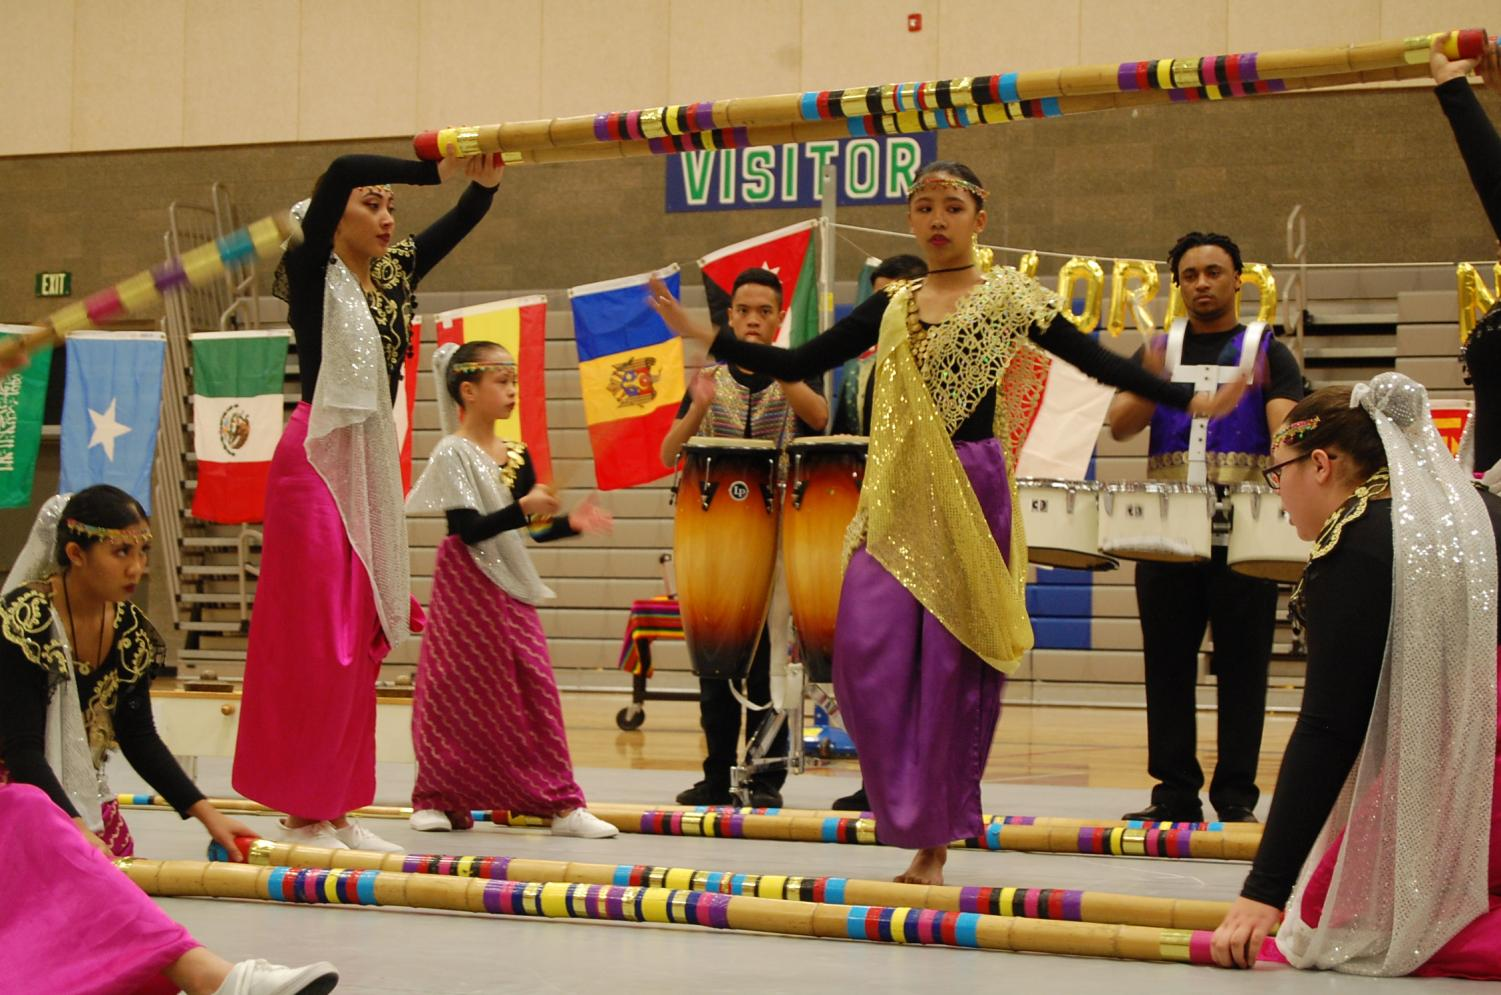 FYA+demonstrates+%E2%80%9Ctinikling%E2%80%9D+which+is+a+folk+dance+in+the+Philippines+that+involves+two+people+hitting+and+sliding+bamboo+poles+on+the+ground+while+one+or+more+other+dances+dance+over%2C+between%2C+and+on+the+poles